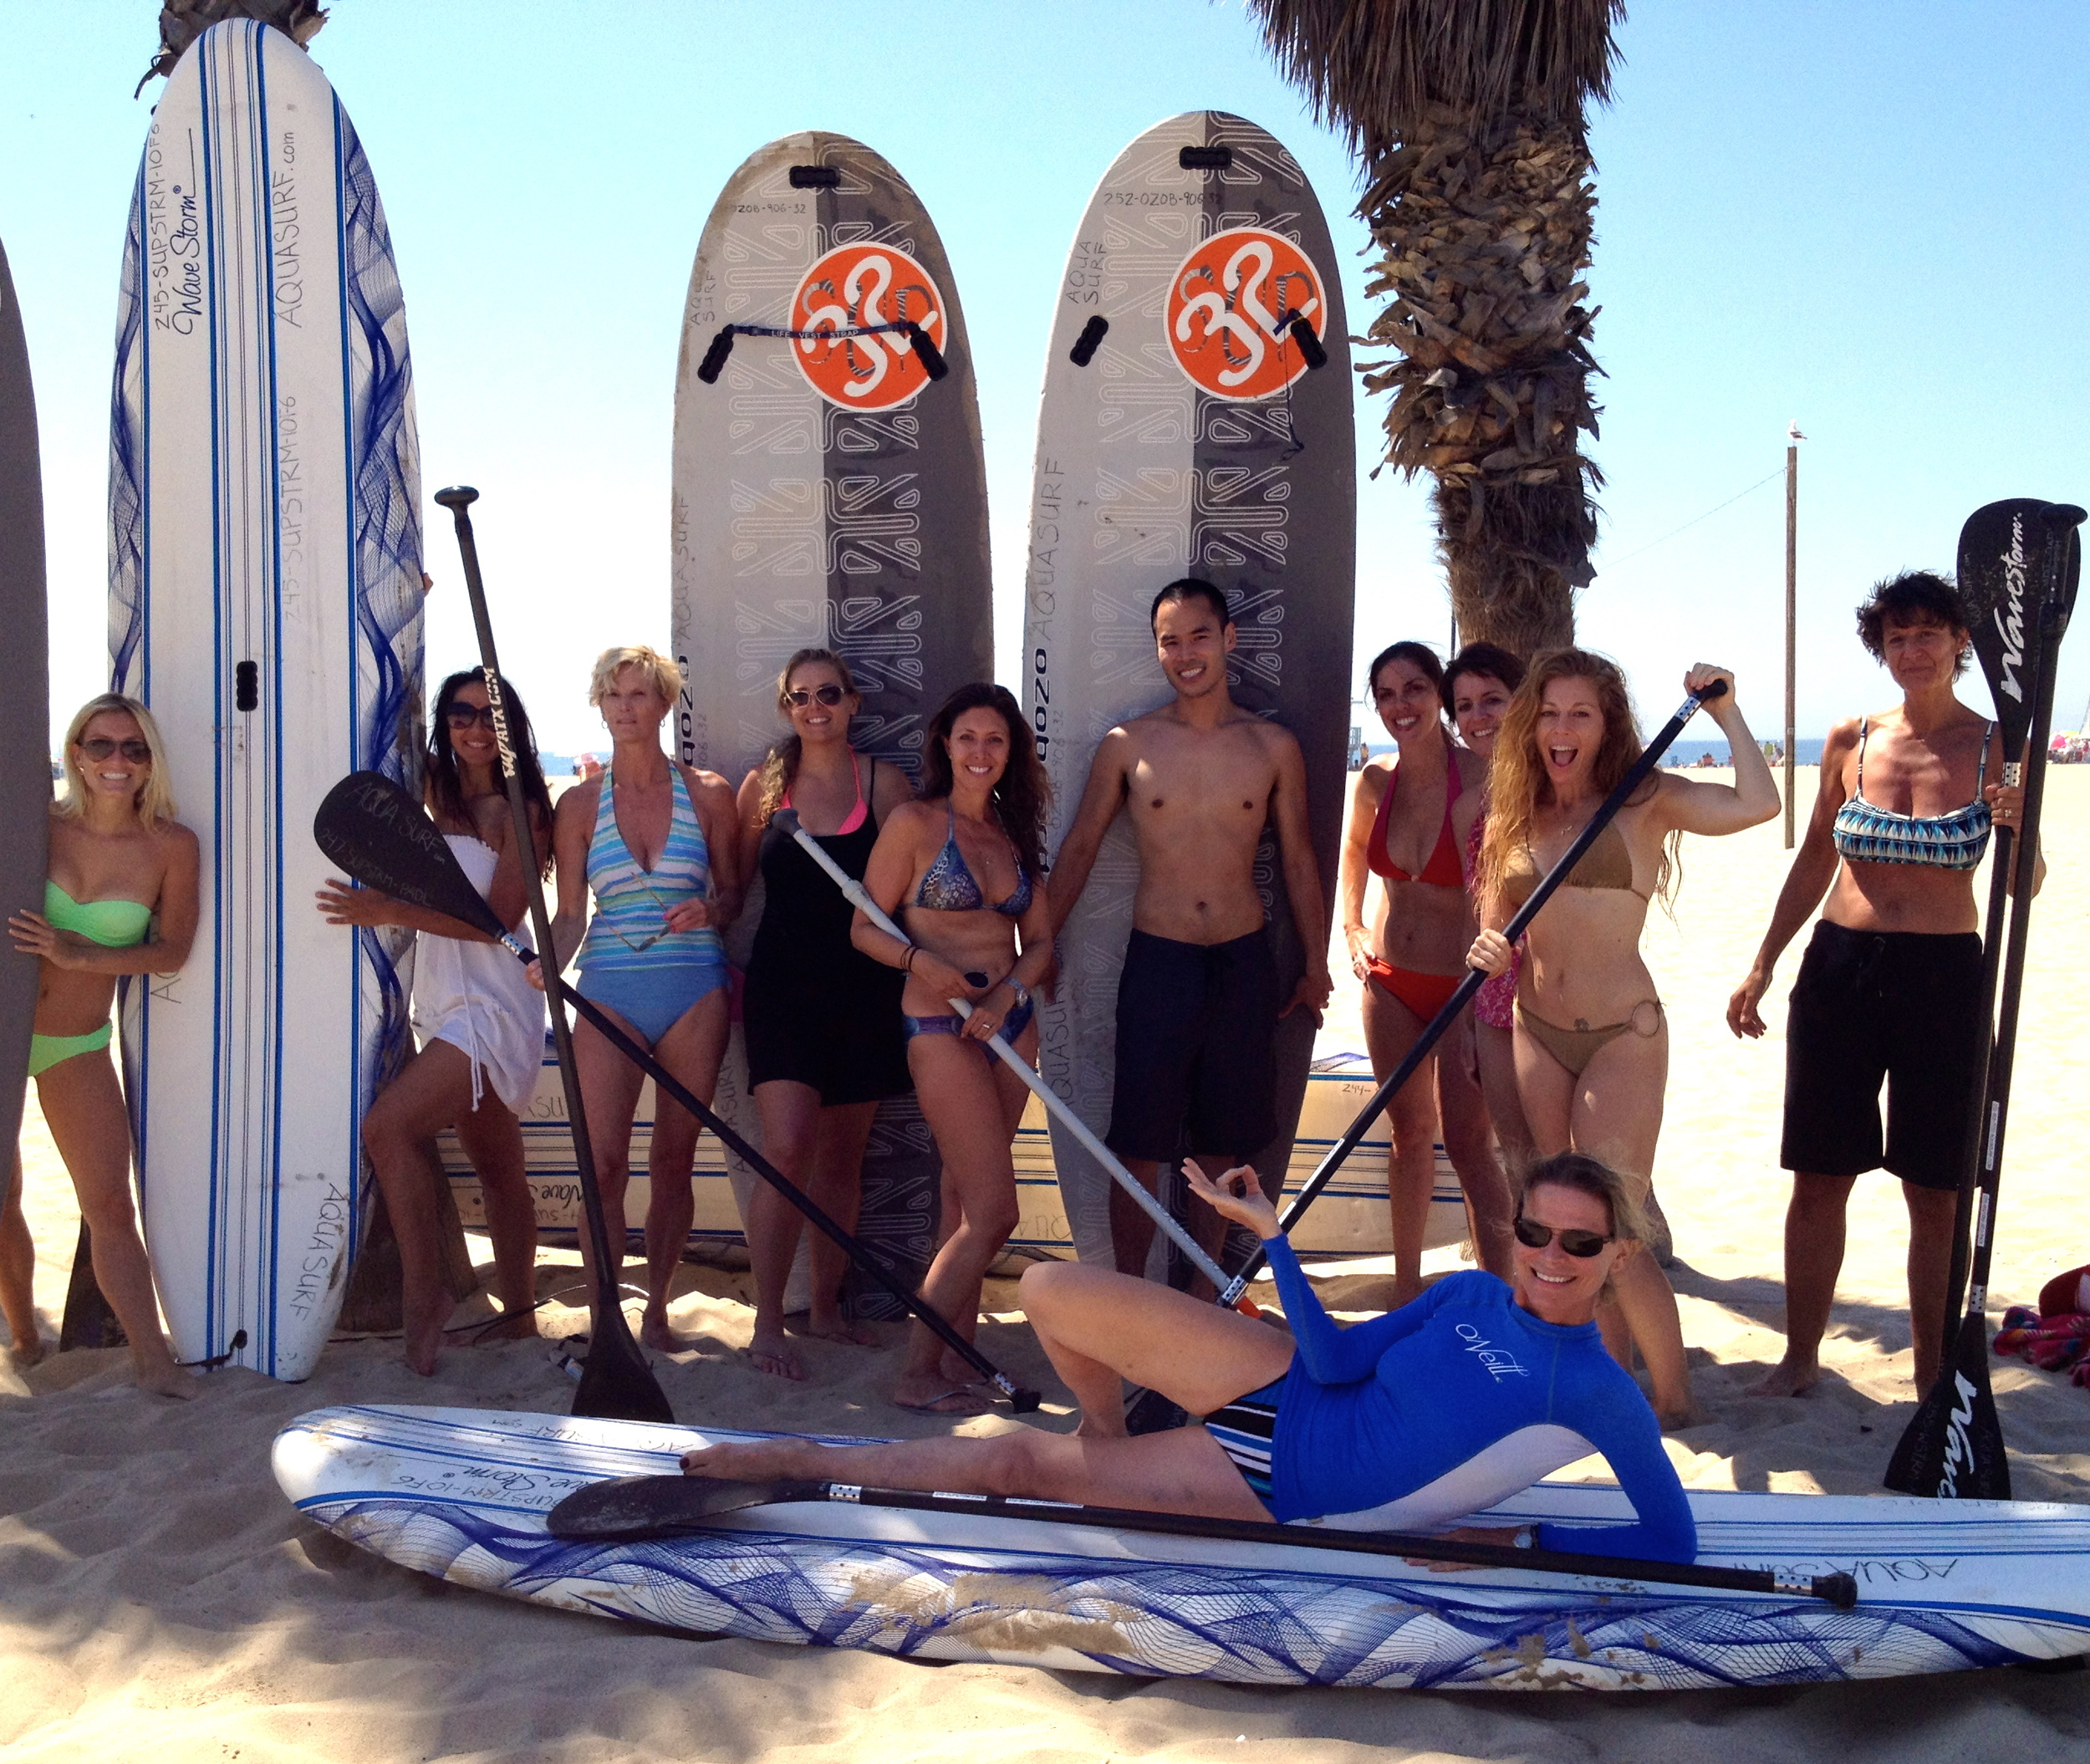 With the Exhale Spa retreat group in Santa Monica, Summer 2012. We conquered the waves getting in and out of the ocean!